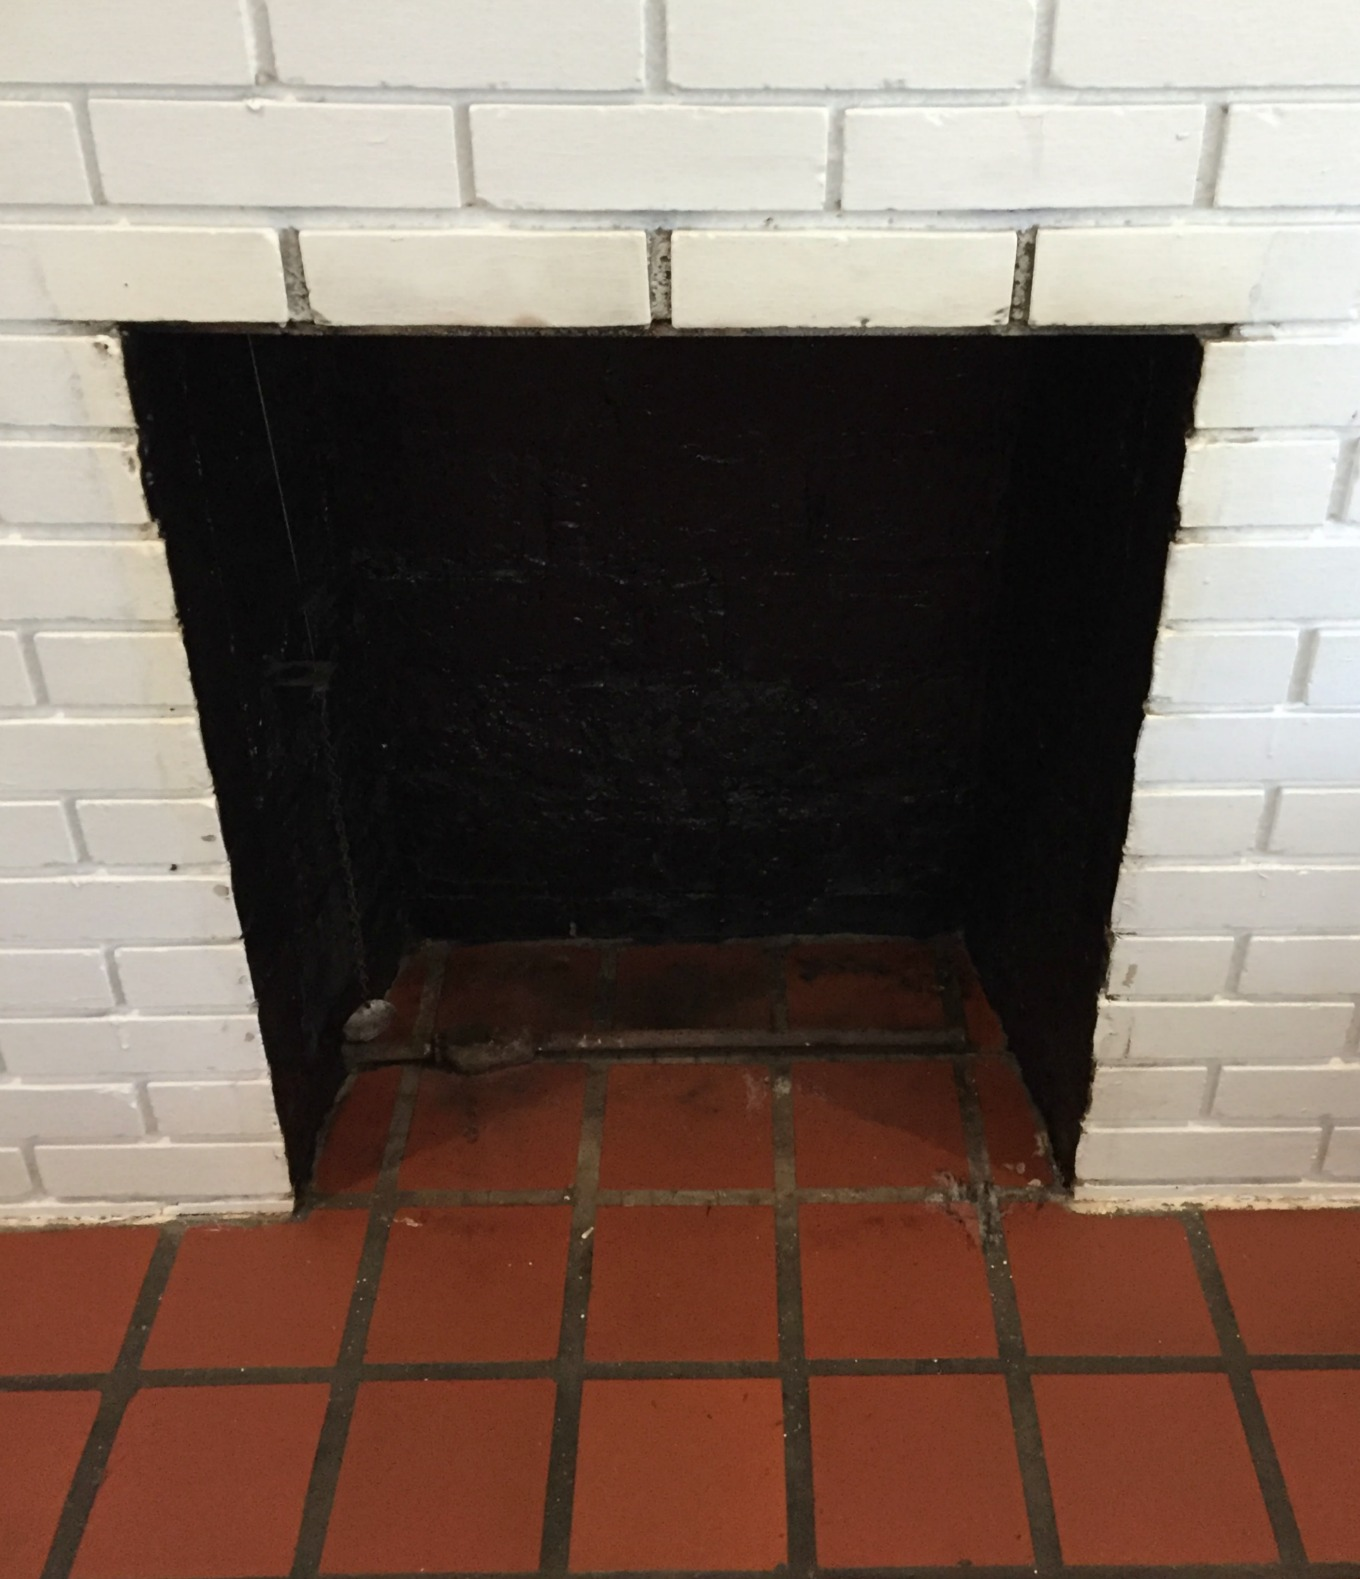 Inside of firebox painted black for fireplace makeover - thediybungalow.com